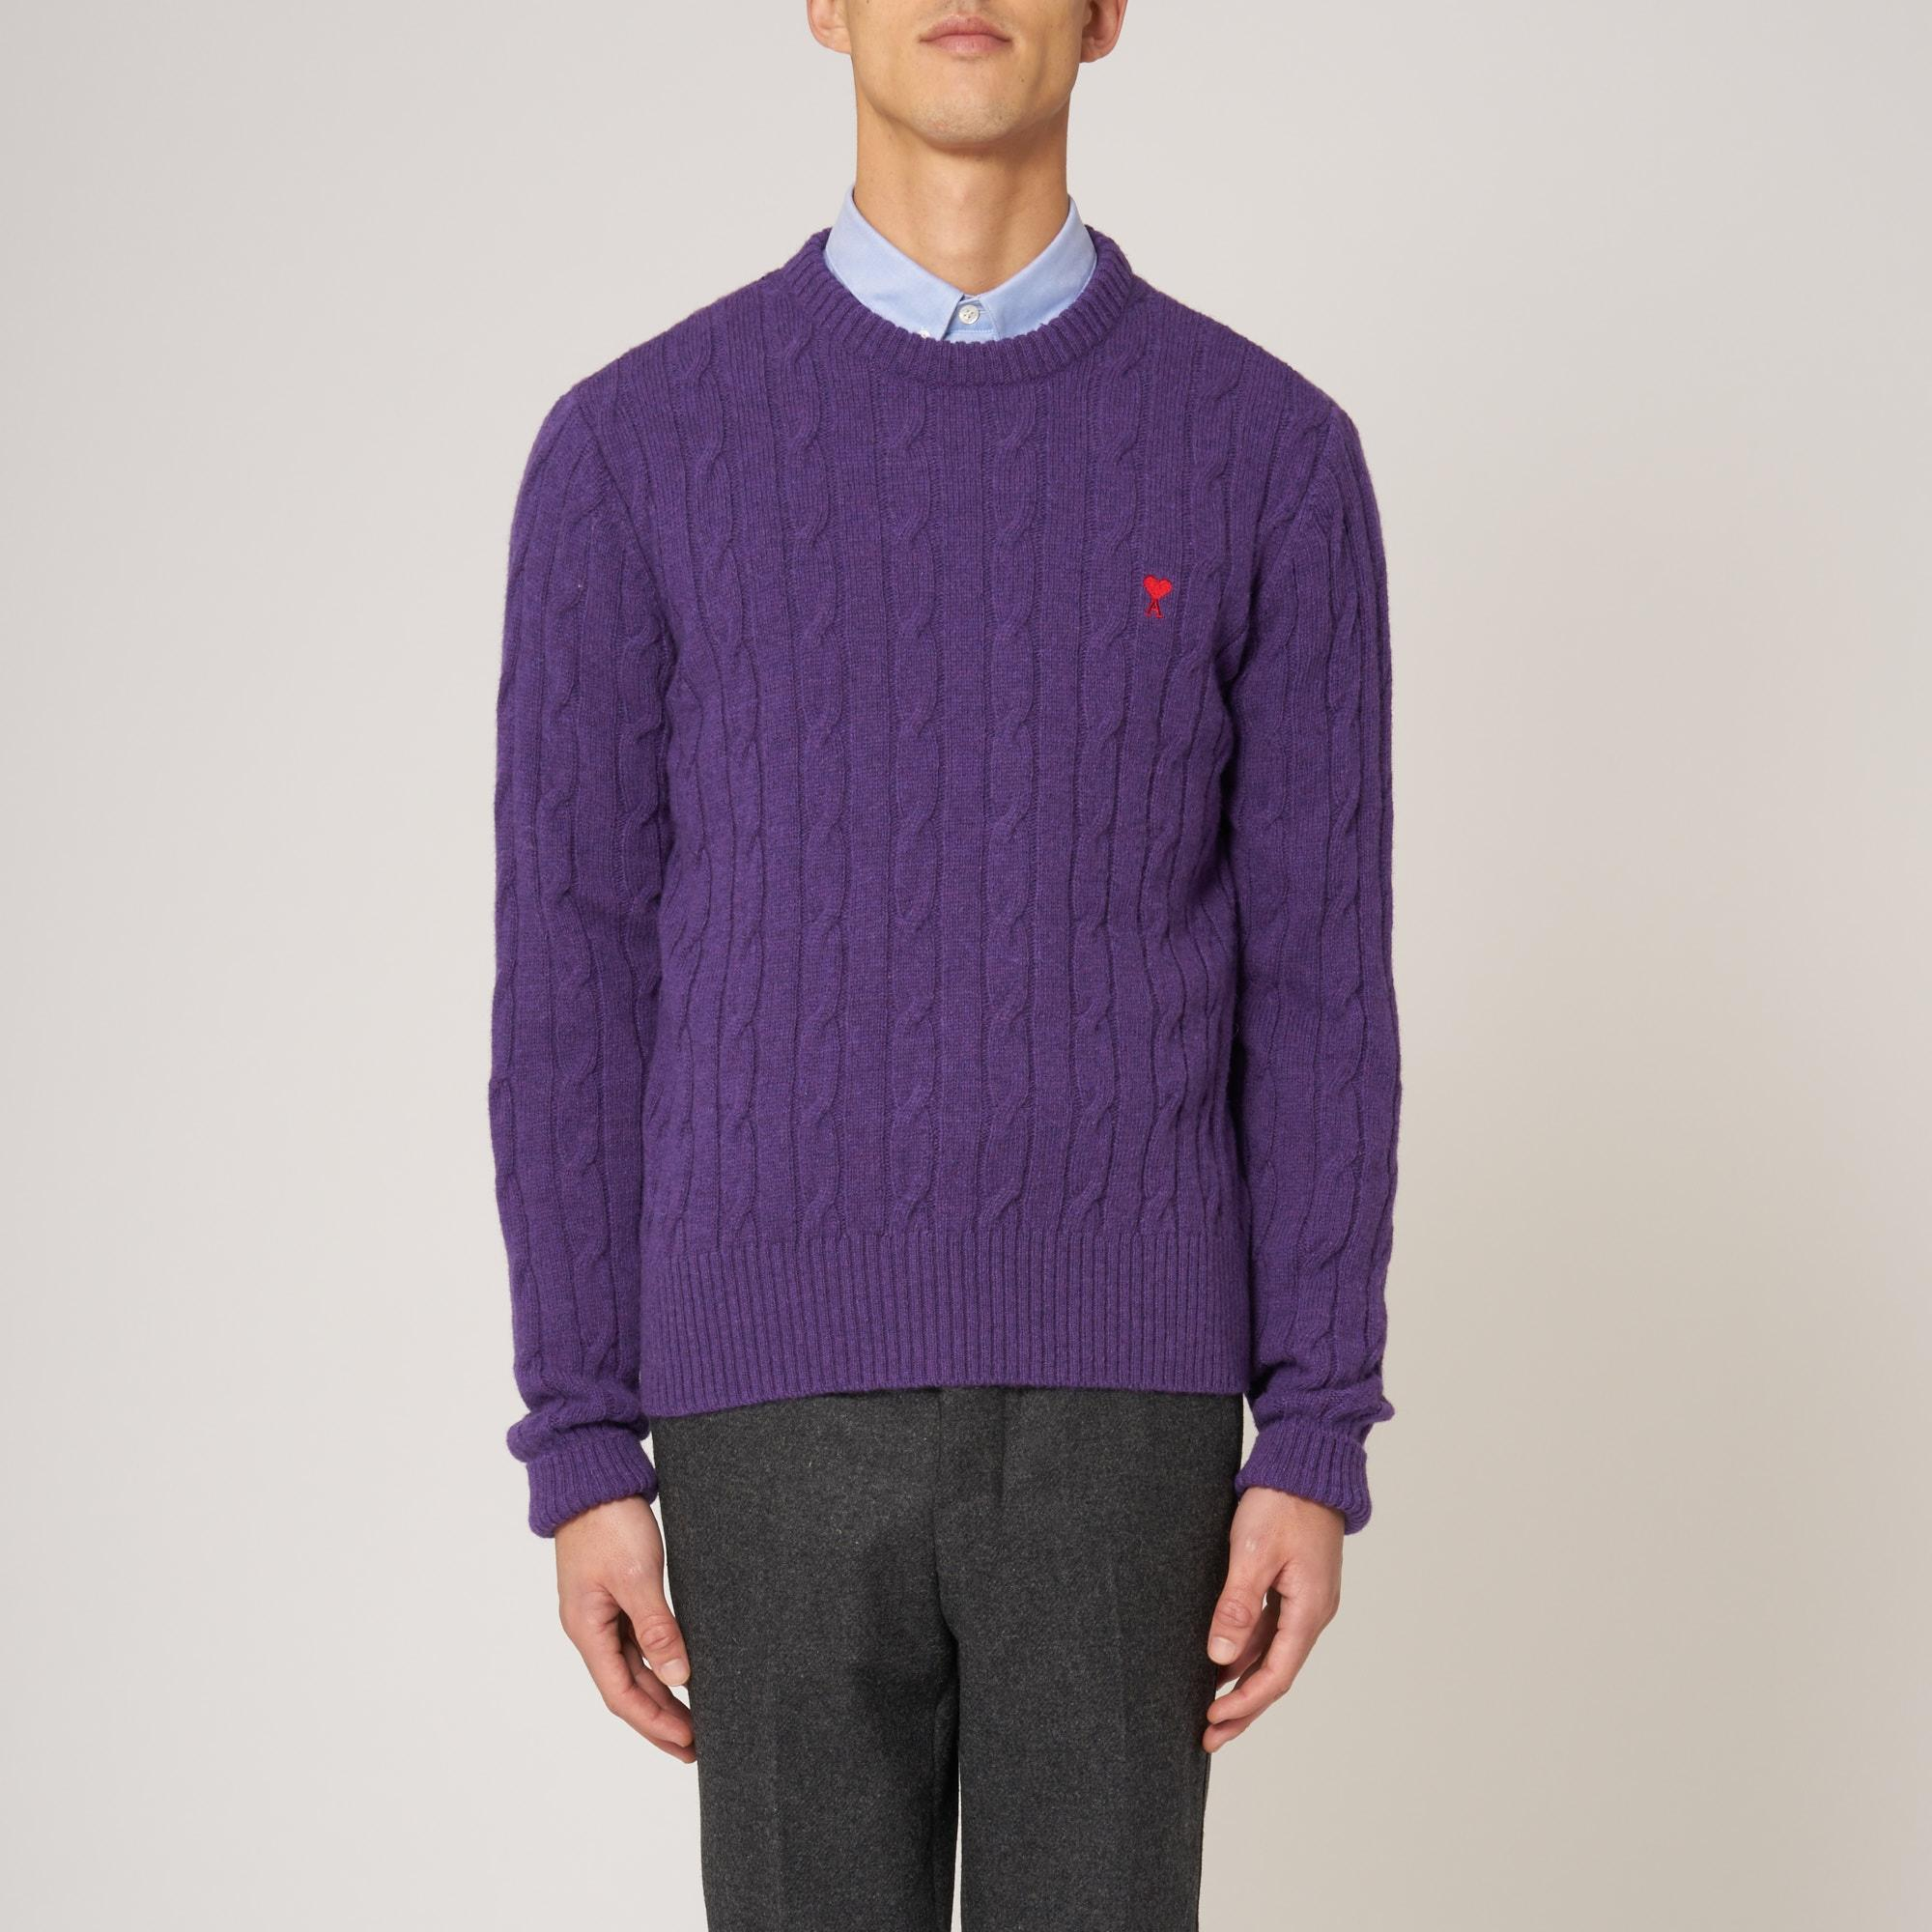 Ami Purple Cable-knit Sweater in Purple for Men - Save 27% | Lyst